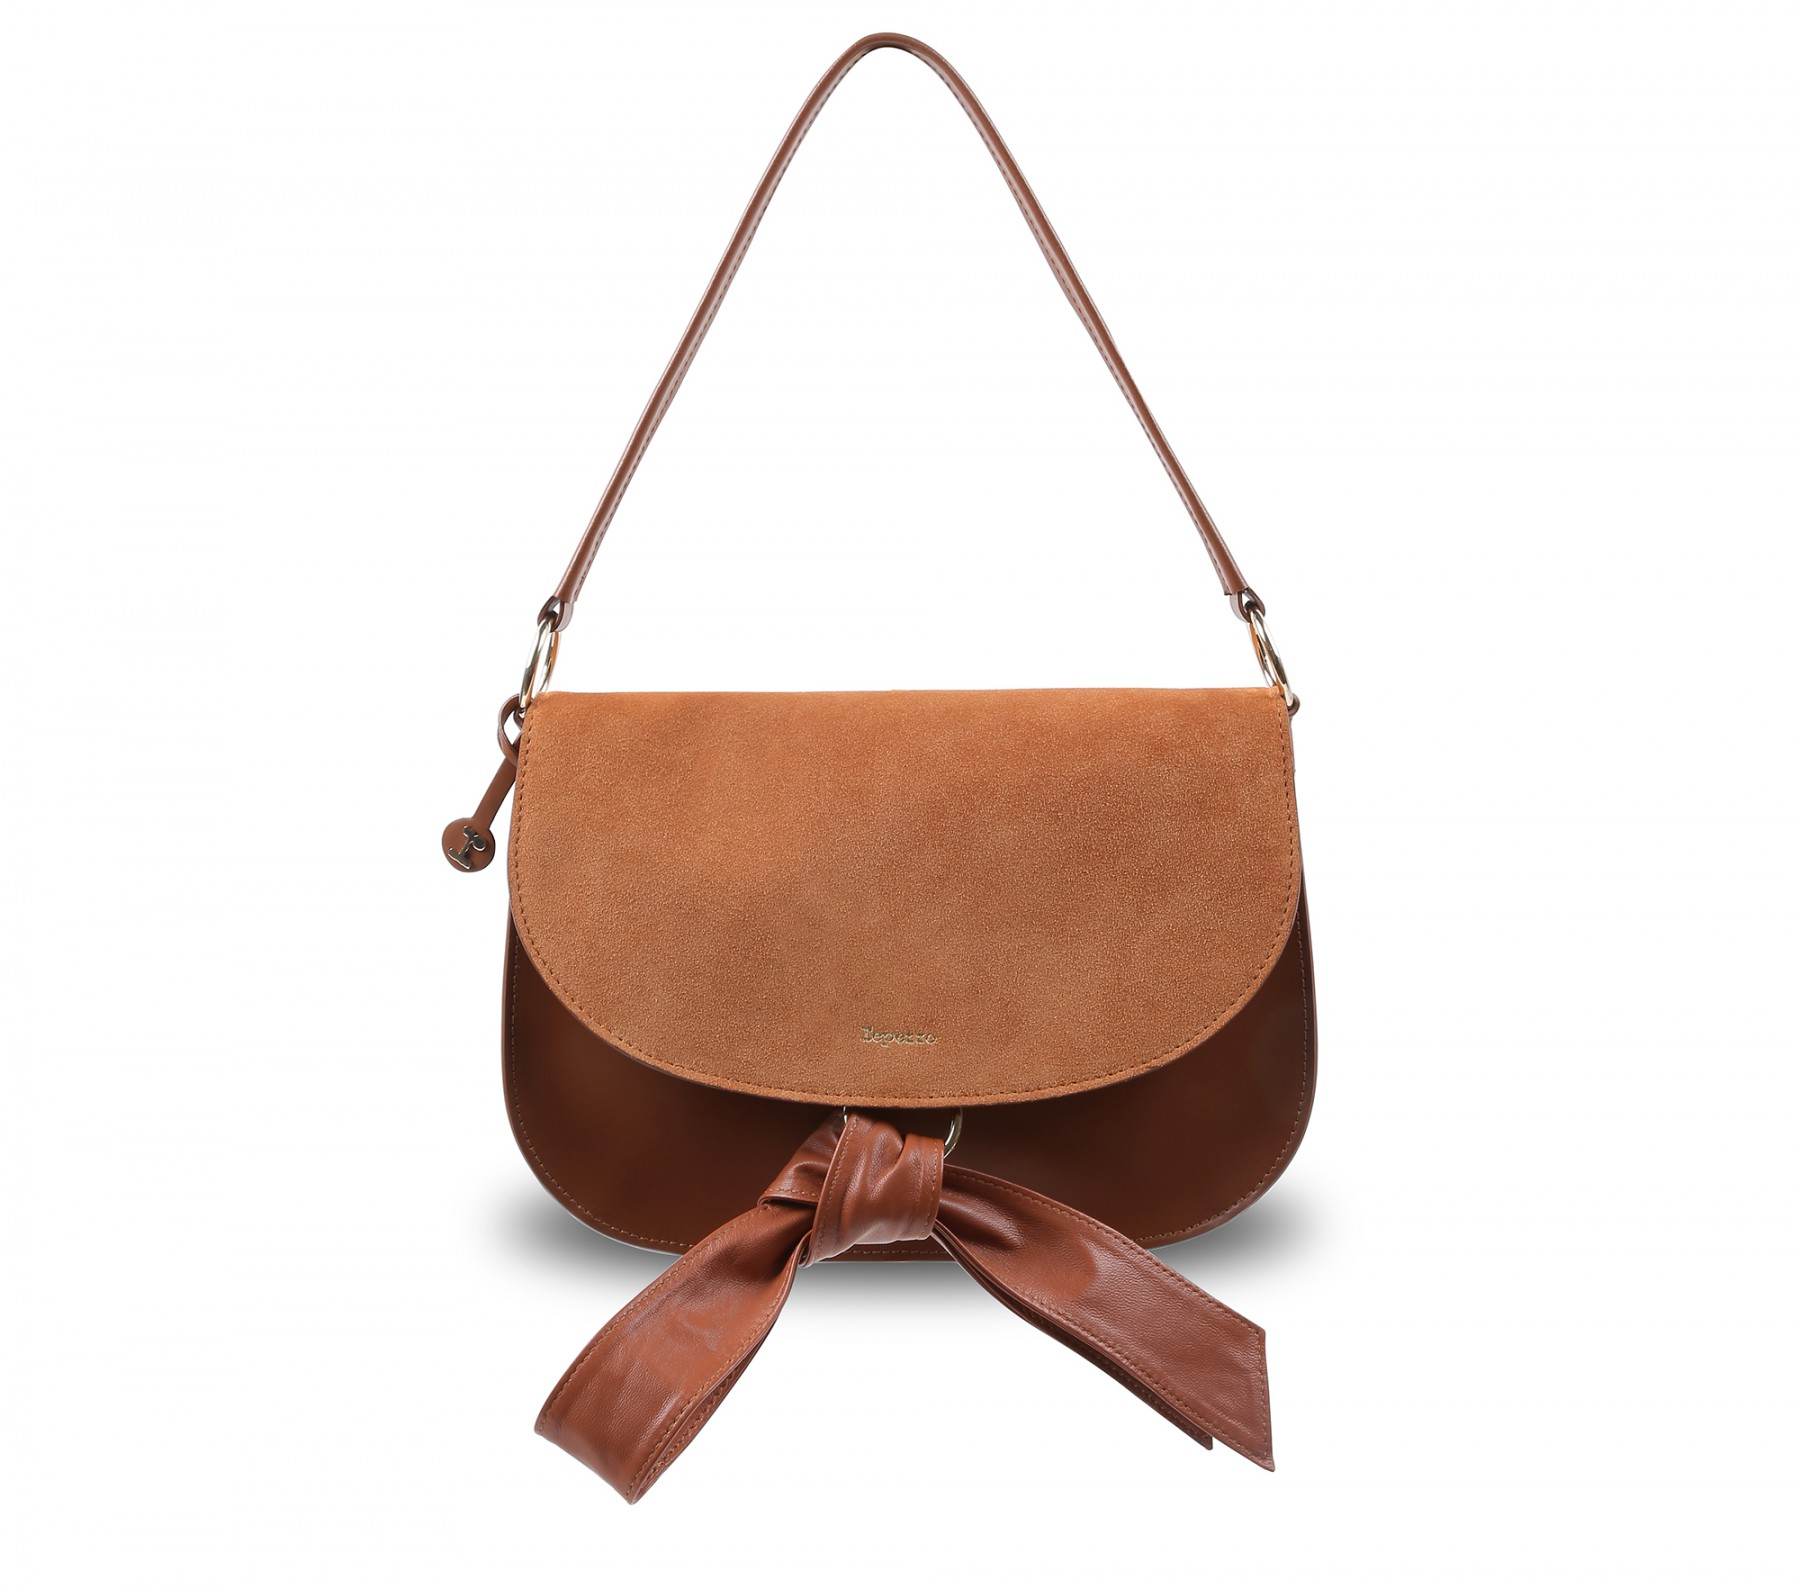 Chorus Saddlebag - Cognac Brown